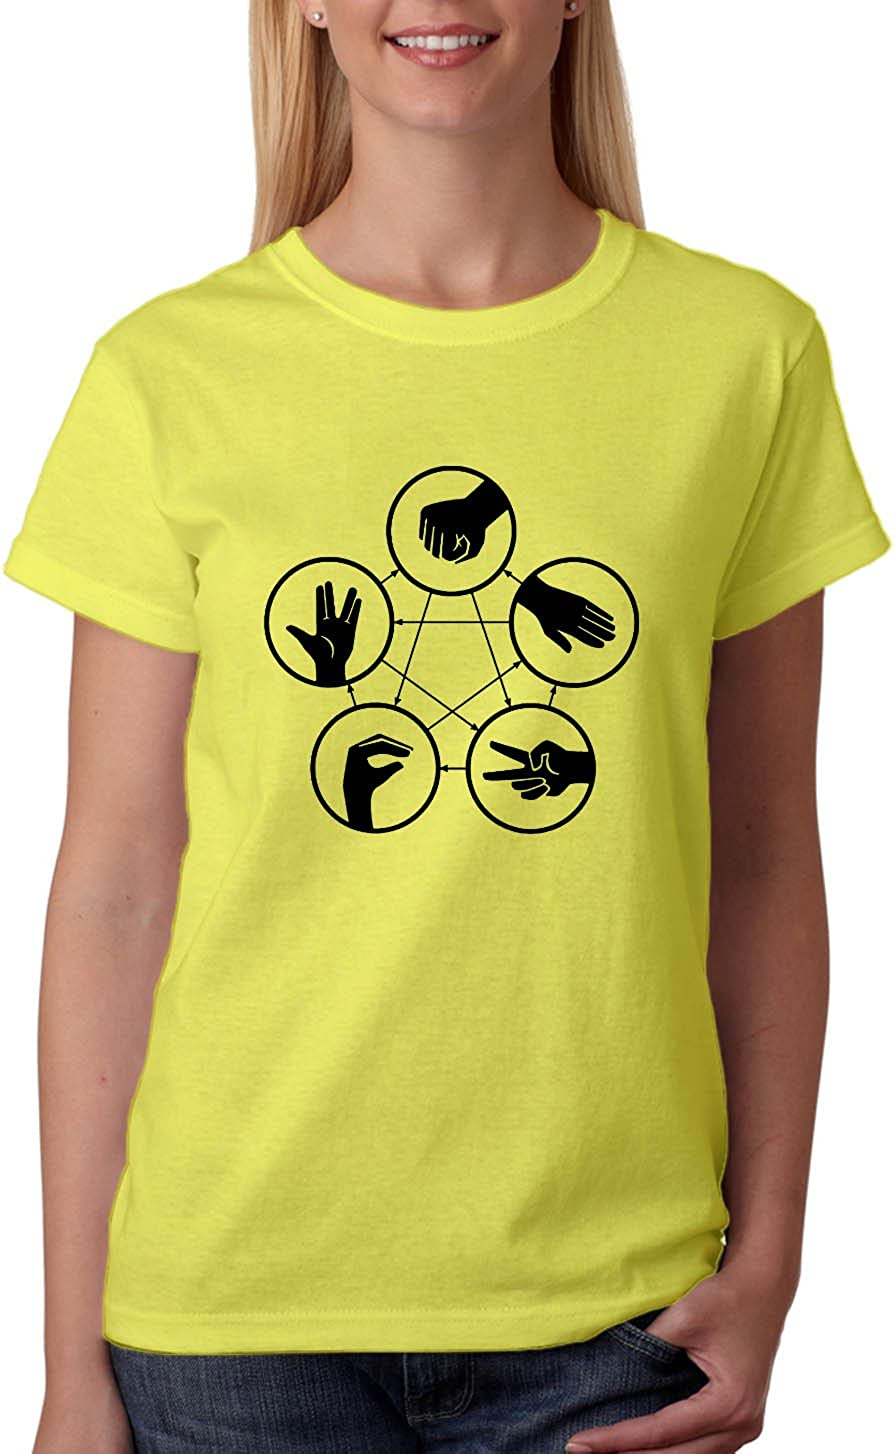 ROCK PAPER SCISSORS LIZARD SPOCK T-Shirt Womens theory Funny ladies sheldon